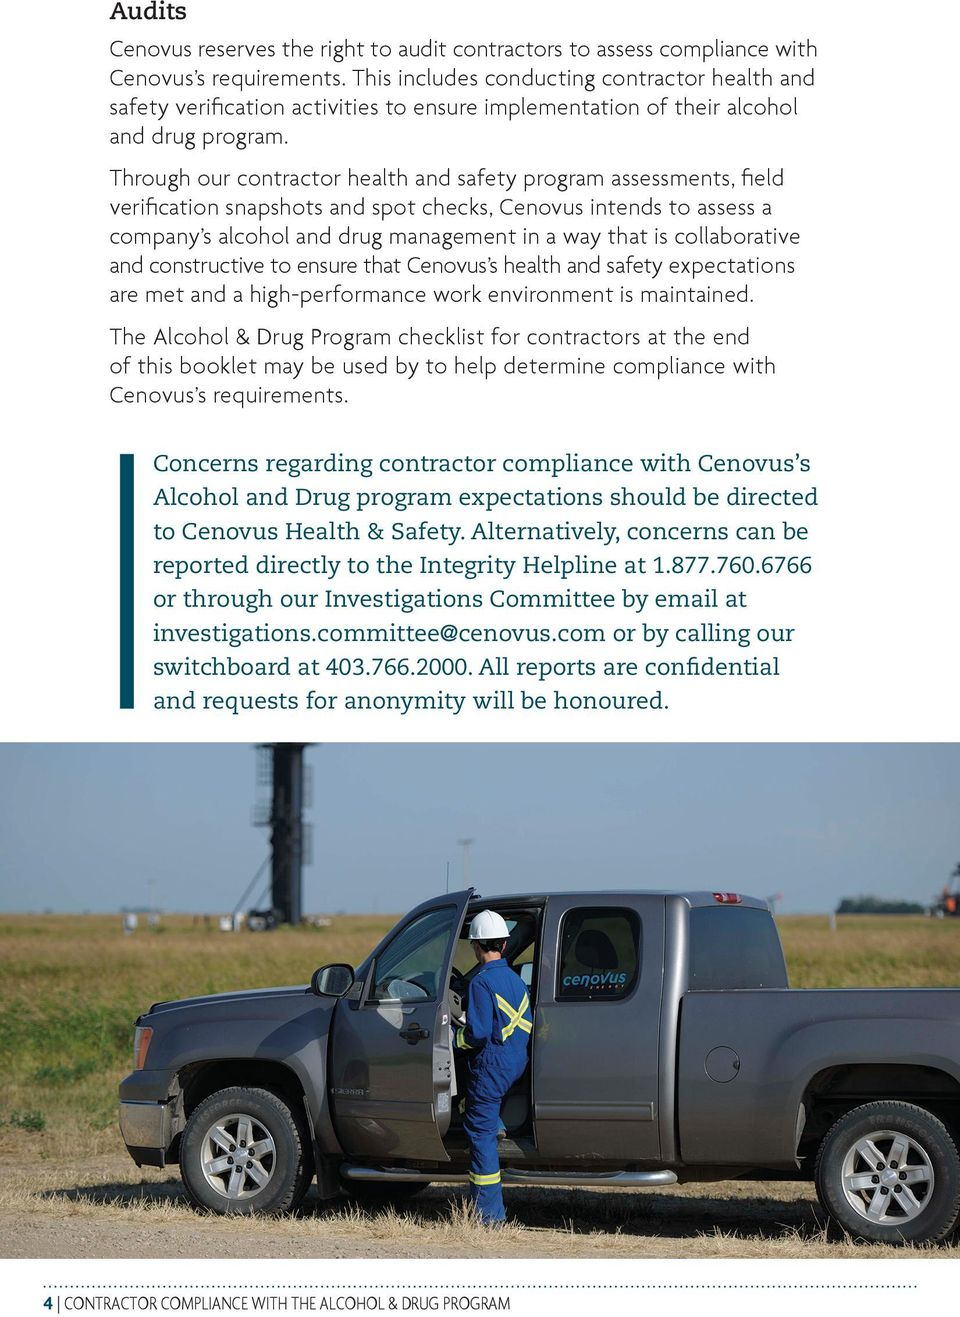 Through our contractor health and safety program assessments, field verification snapshots and spot checks, Cenovus intends to assess a company s alcohol and drug management in a way that is